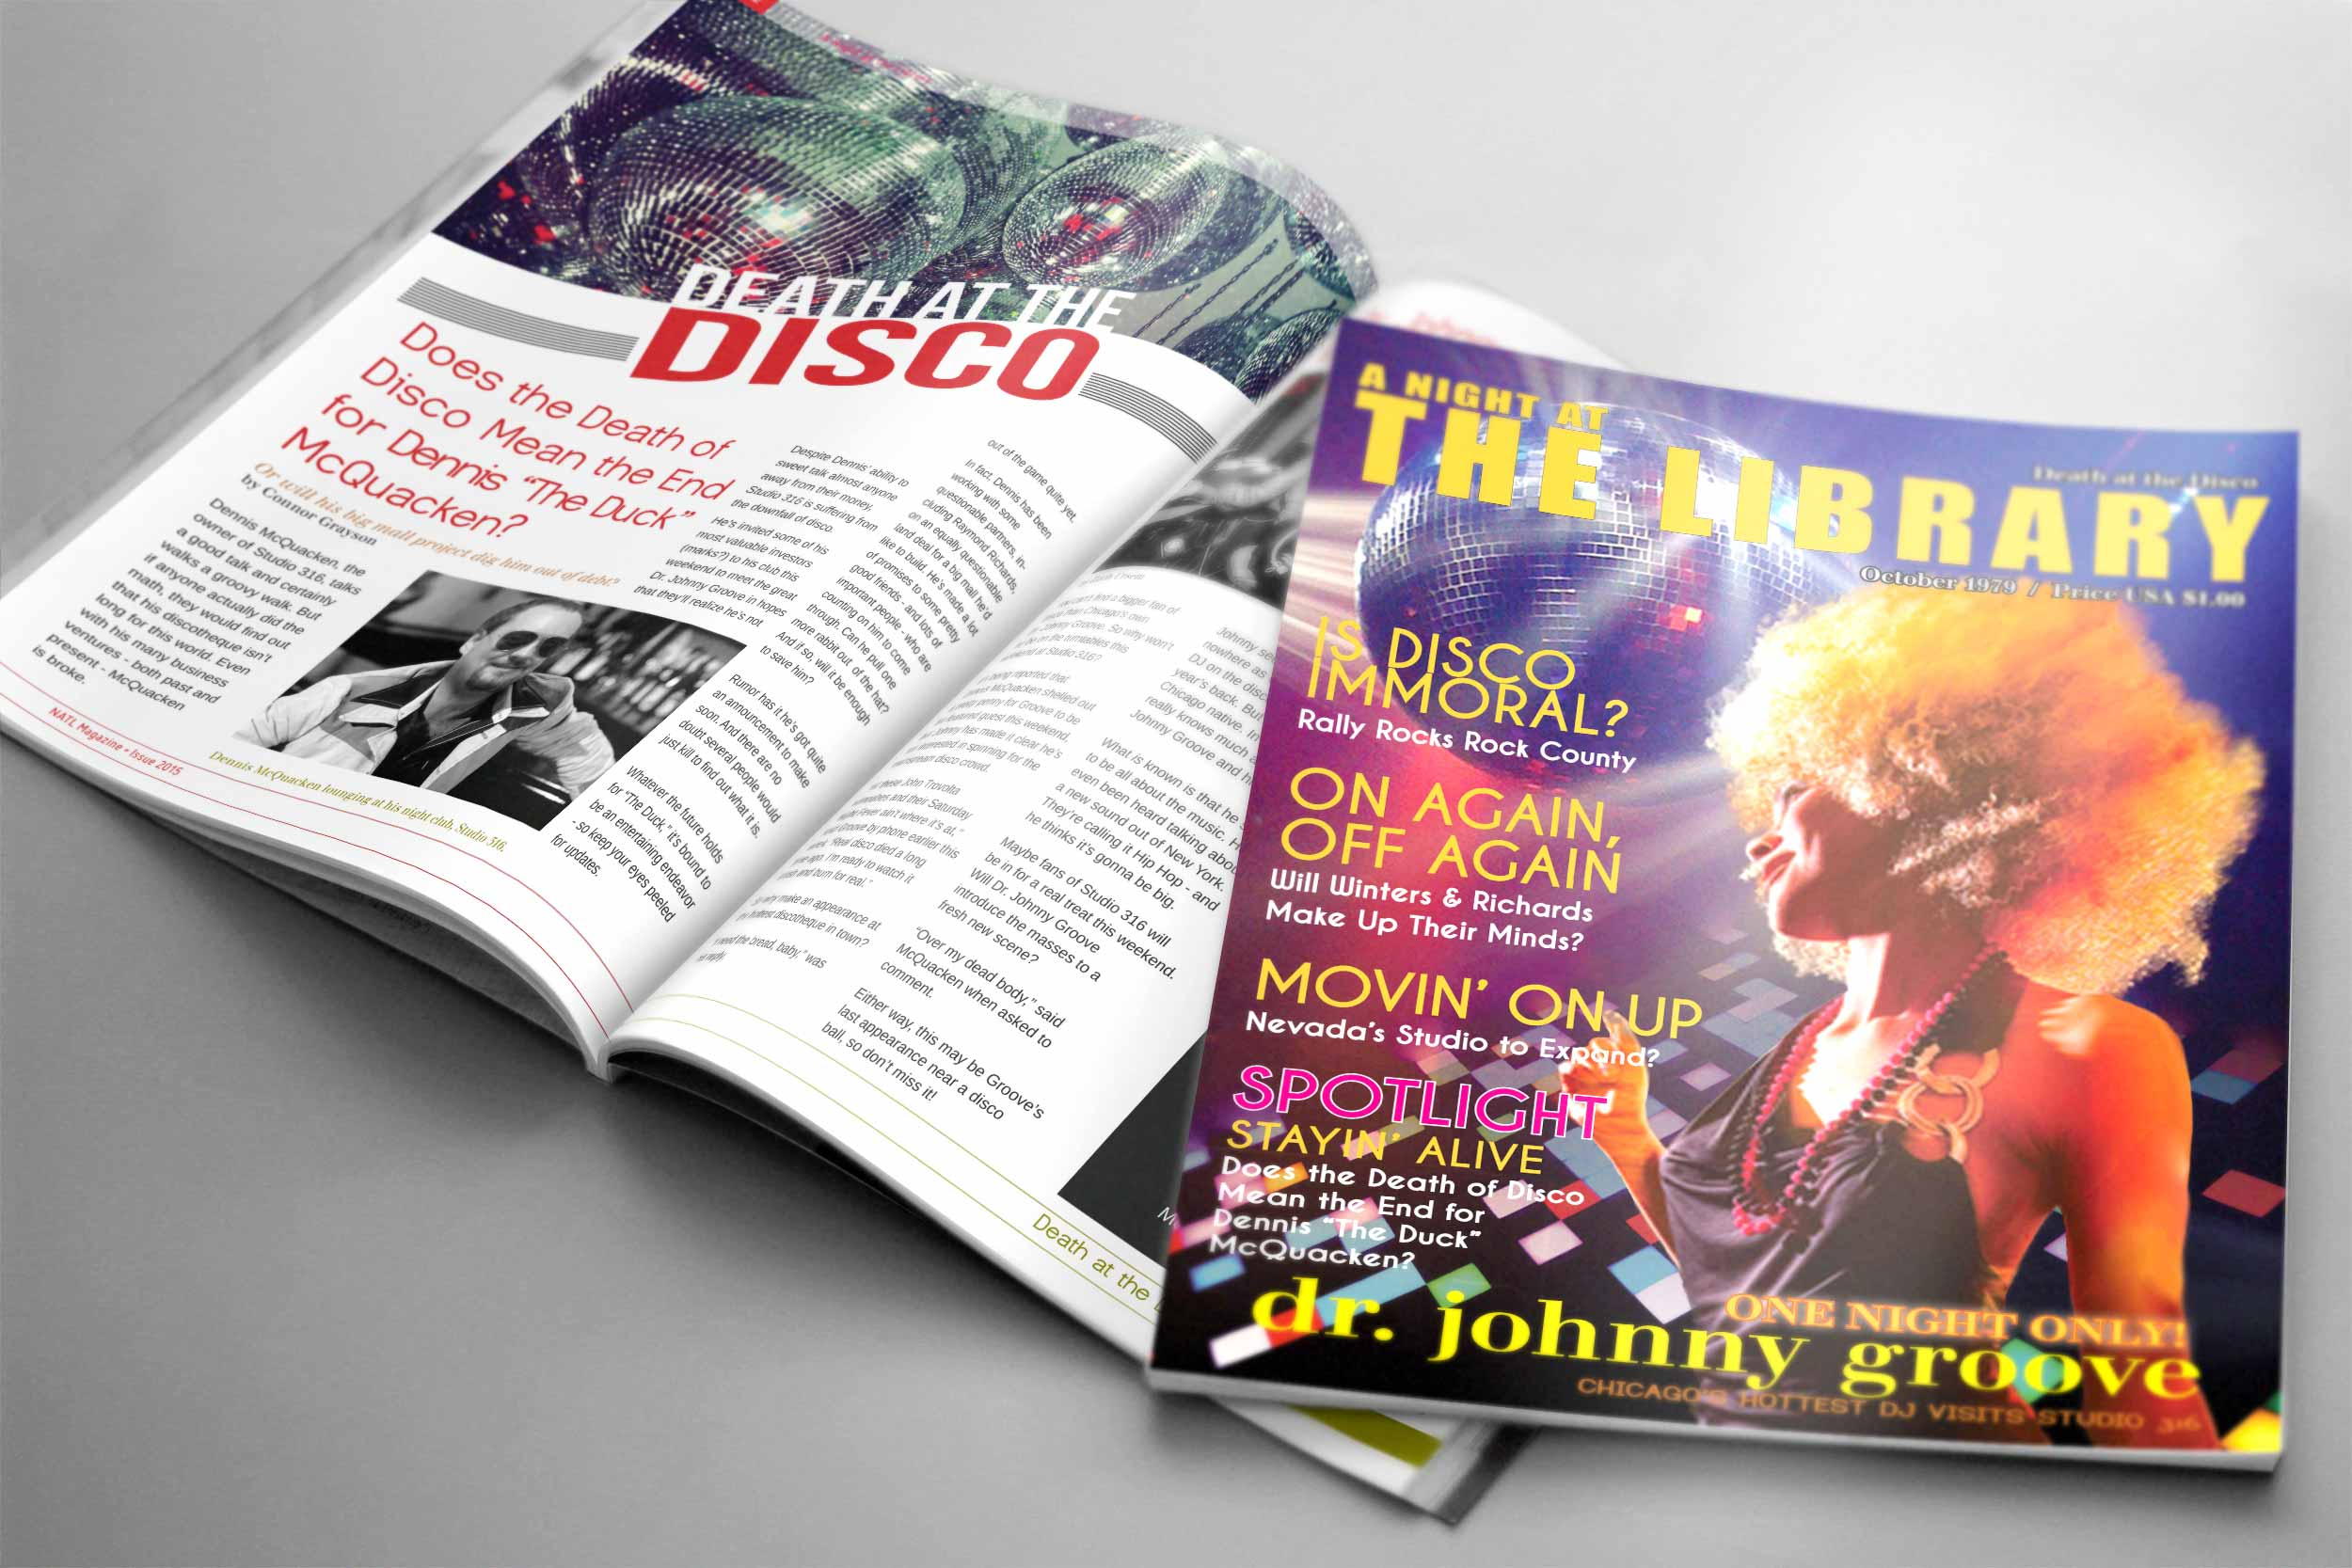 Death at the Disco Promotional Magazine